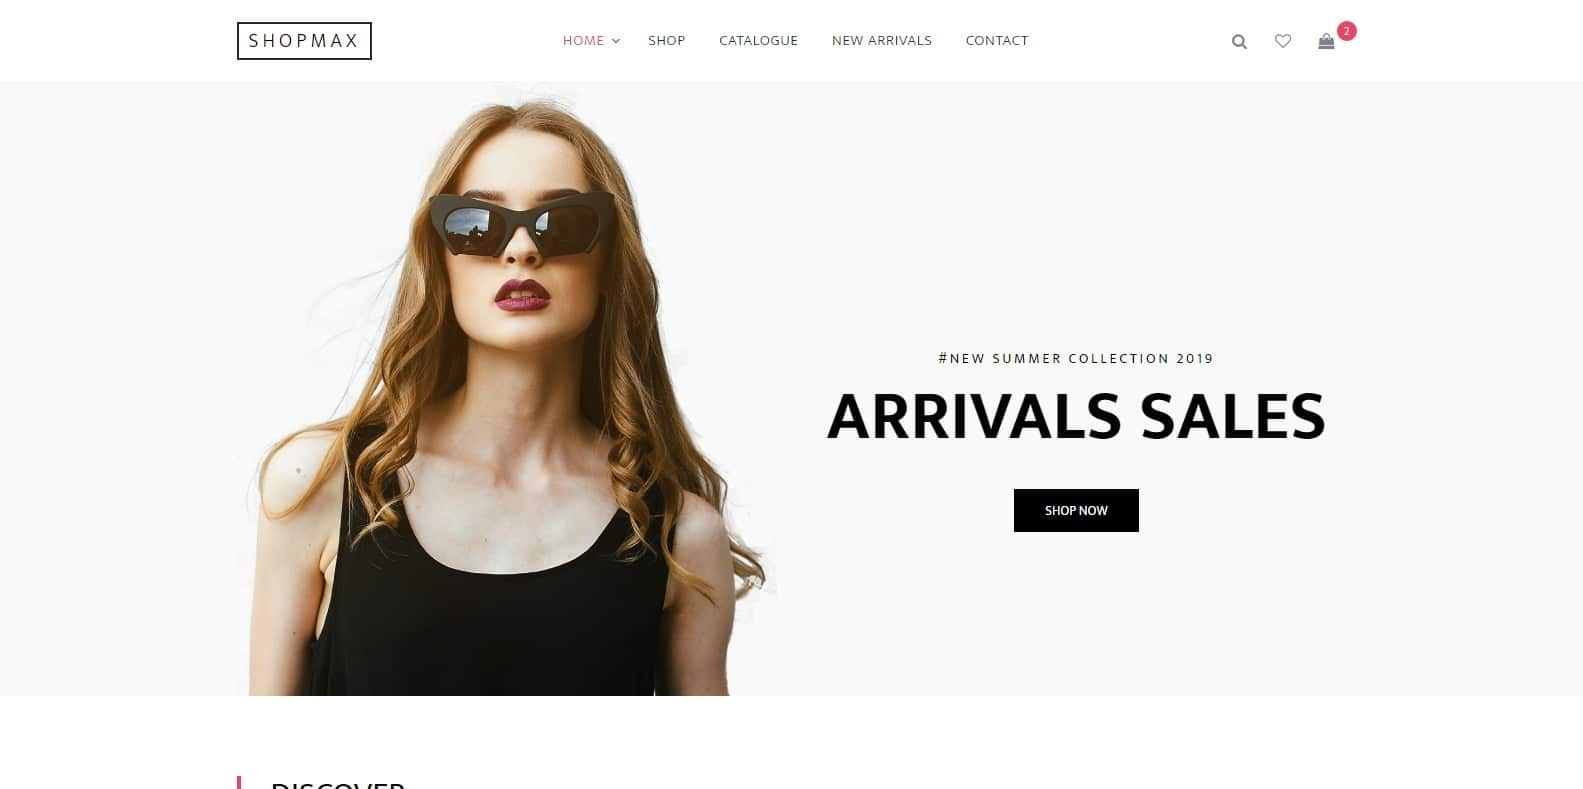 shopmax-ecommerce-website-template